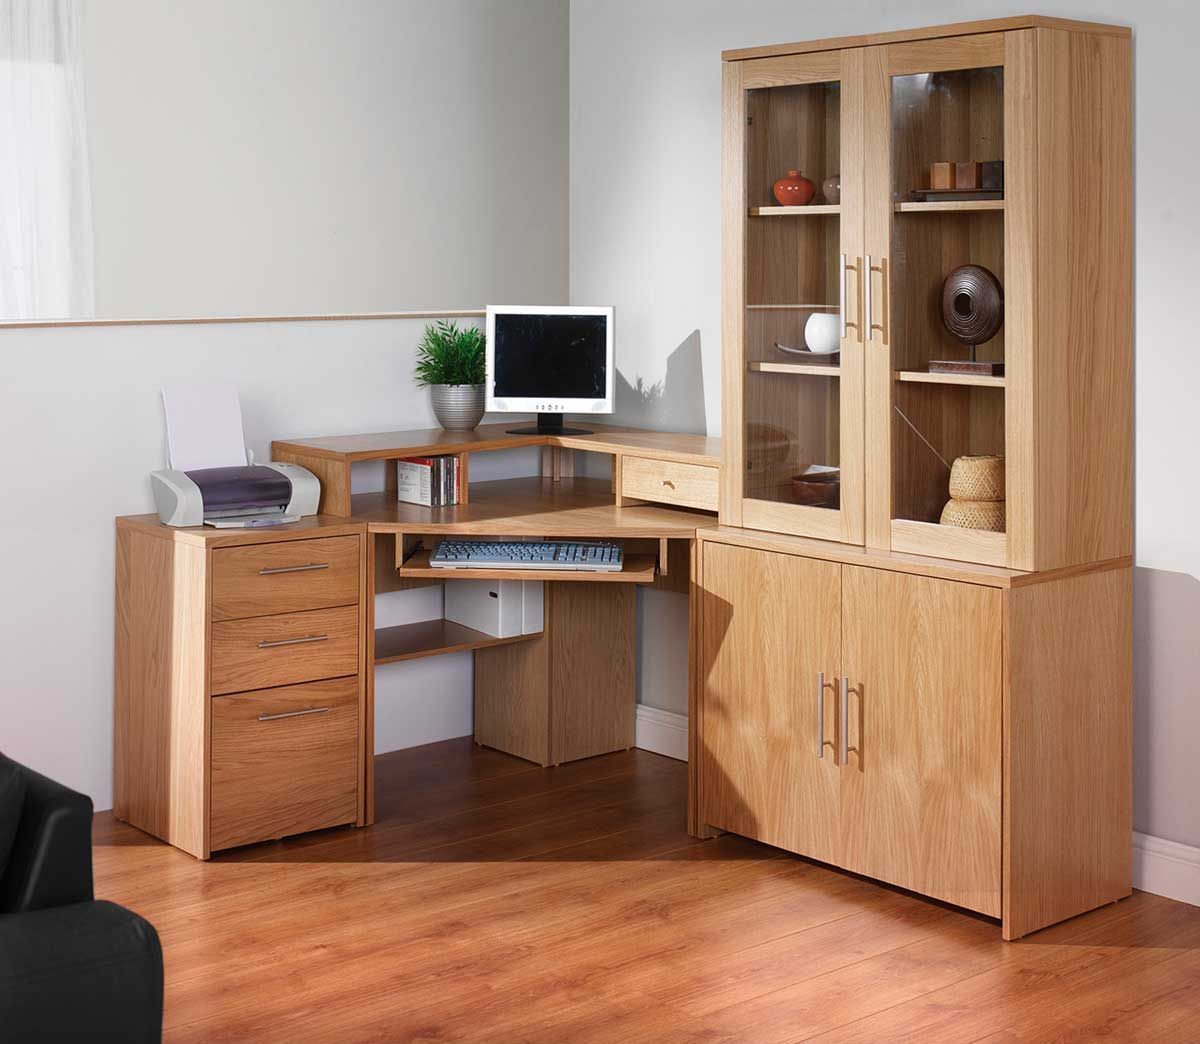 70 Light Wood Office Furniture Home Sets Check More At Http